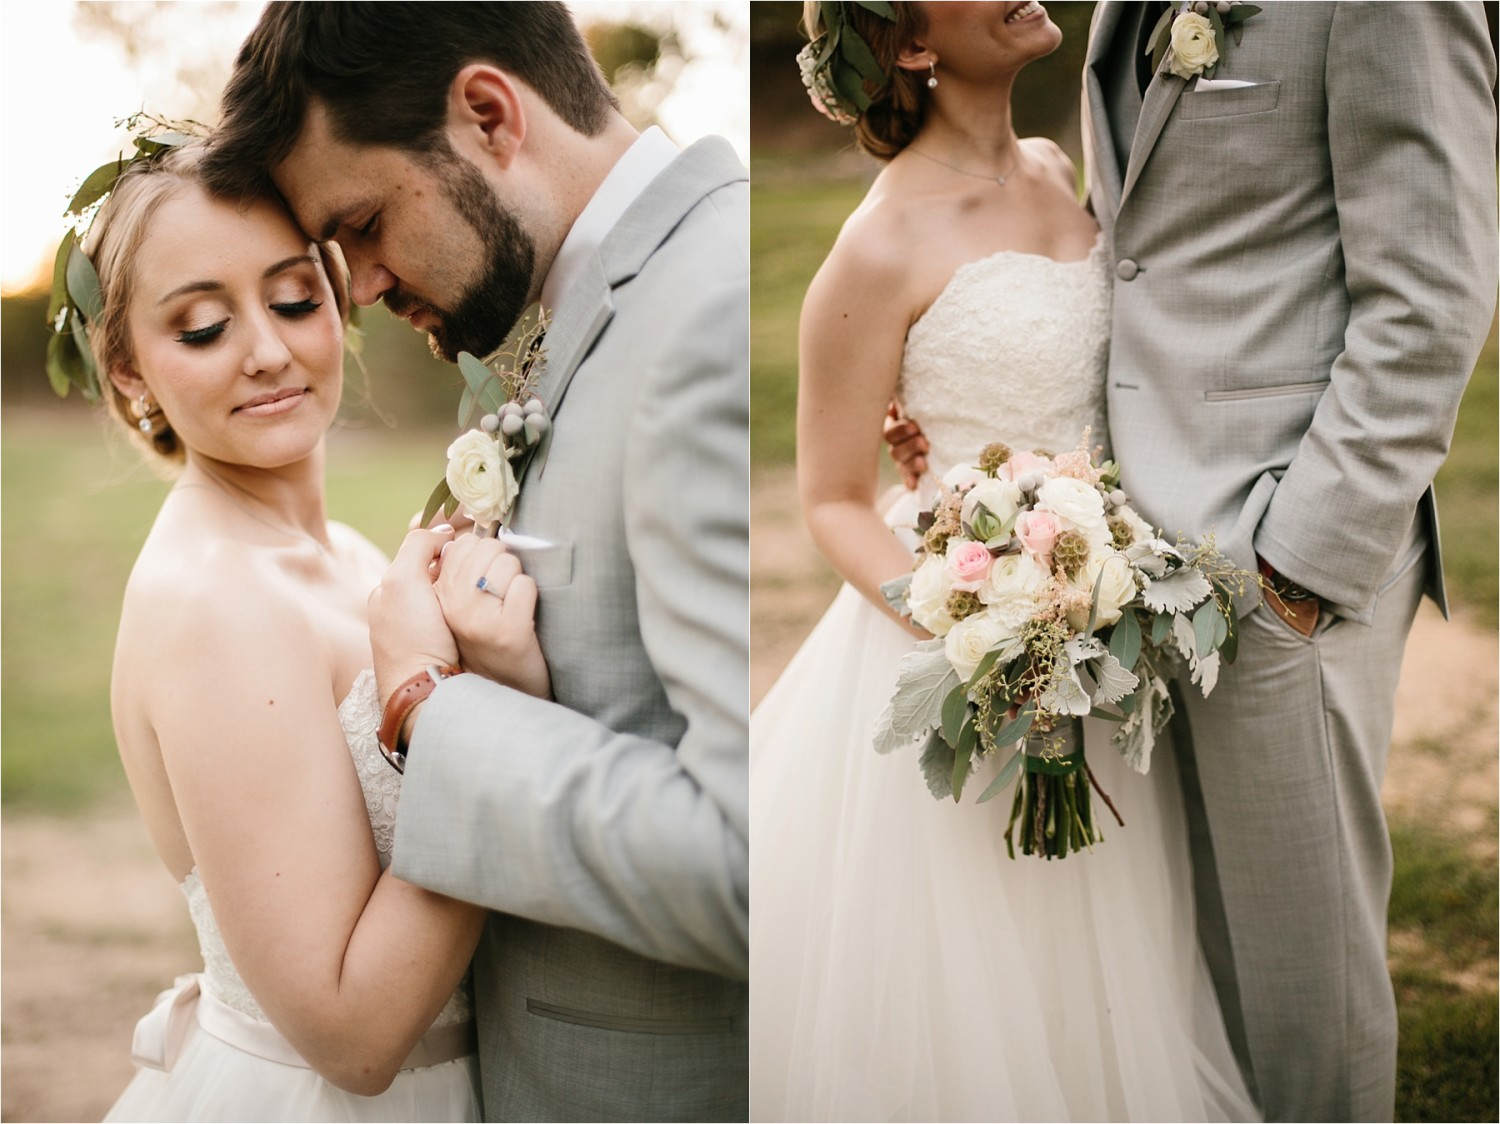 brad-lara-__-a-grey-and-blush-pink-intimate-wedding-at-hidden-waters-event-center-in-waxahachie-tx-by-north-texas-wedding-photographer-rachel-meagan-photography-_-073